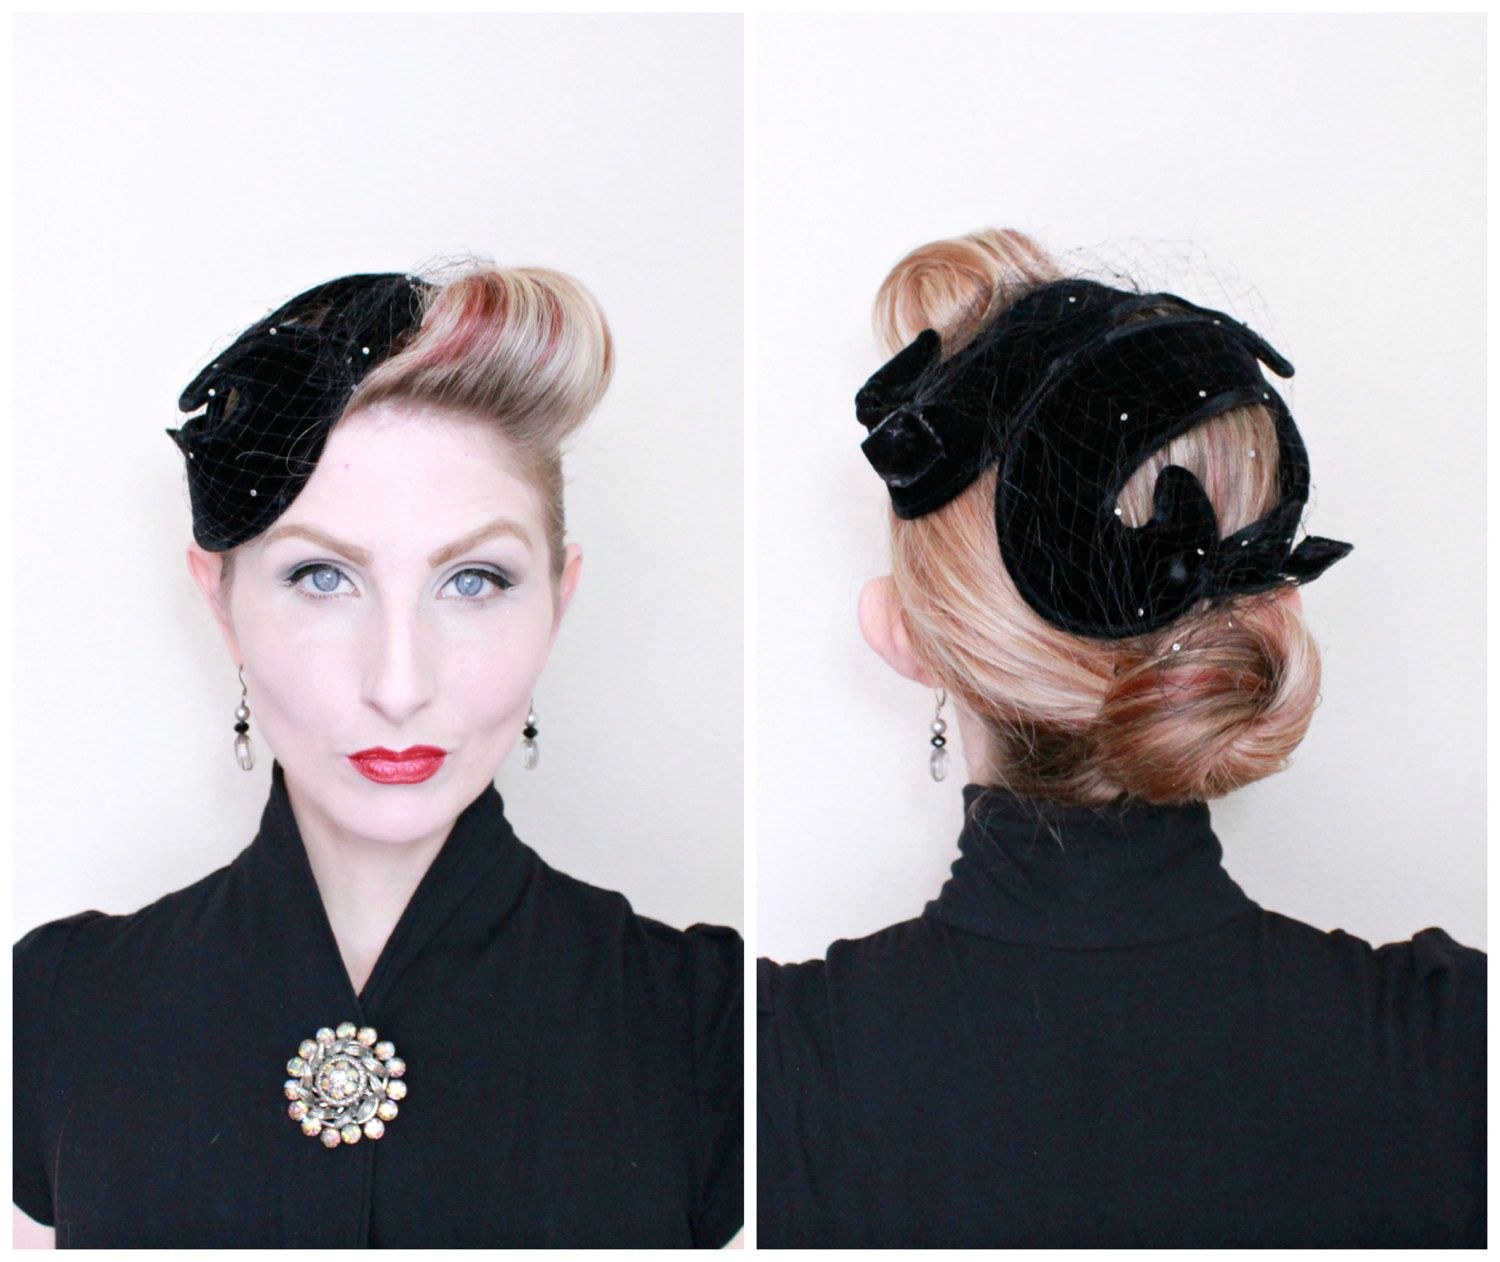 2fe97e03bd59 1950s Hat / VINTAGE / 50s Hat / Swirls / Fascinator / Rhinestones / Black  Velvet / PRETTY by HighHatCouture on Etsy